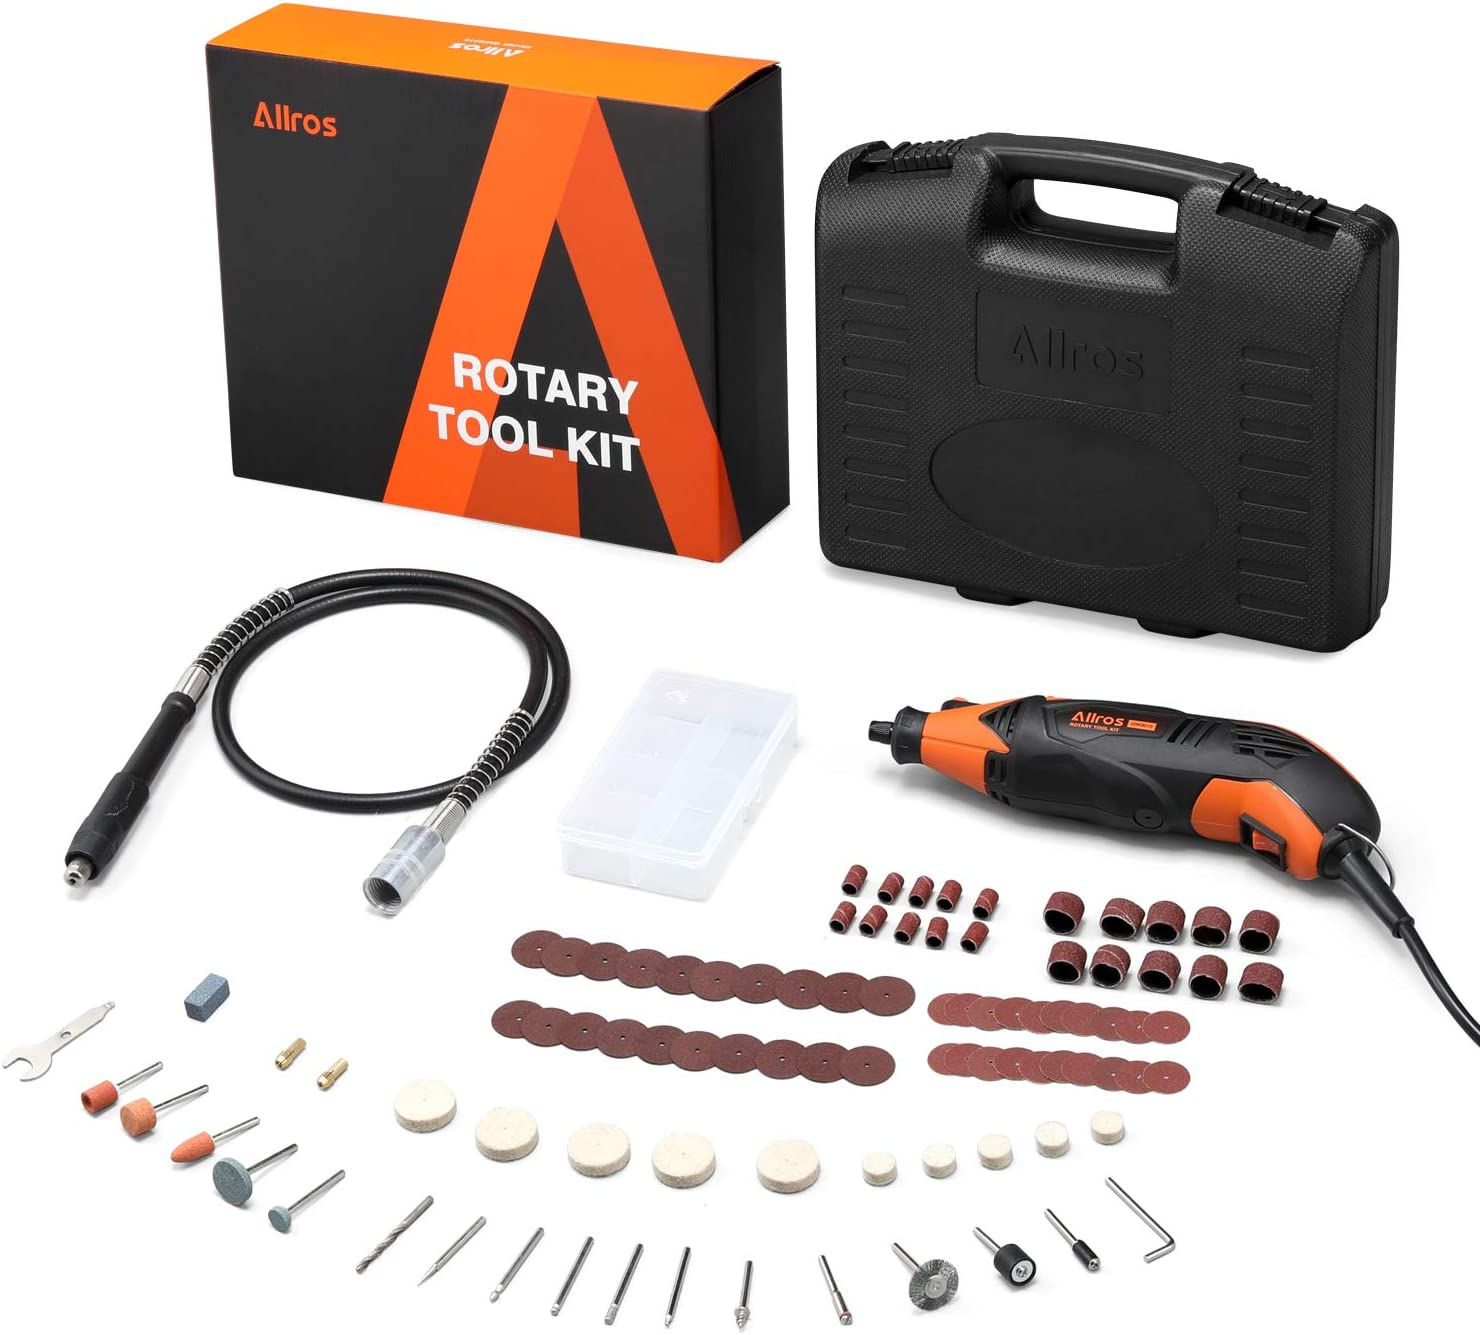 ALLROS 170W Rotary Tool Kit 6 Variable Speed Levels with Flex Shaft, 100pcs Accessories and Carrying Case Multi-functional for Home Crafting Projects, Cutting, Detail Sanding, Engraving, Wood Carving